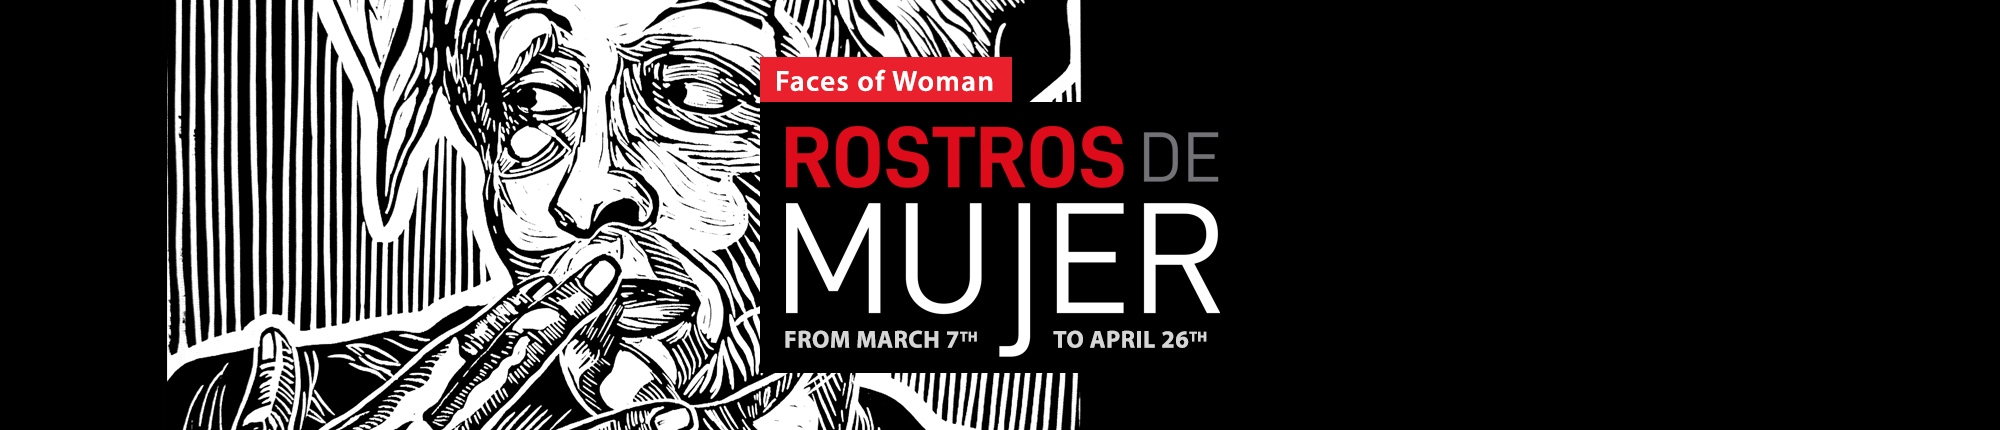 Faces of Women (Rostros de Mujer): From Tuesday March 7 to April 26 2019